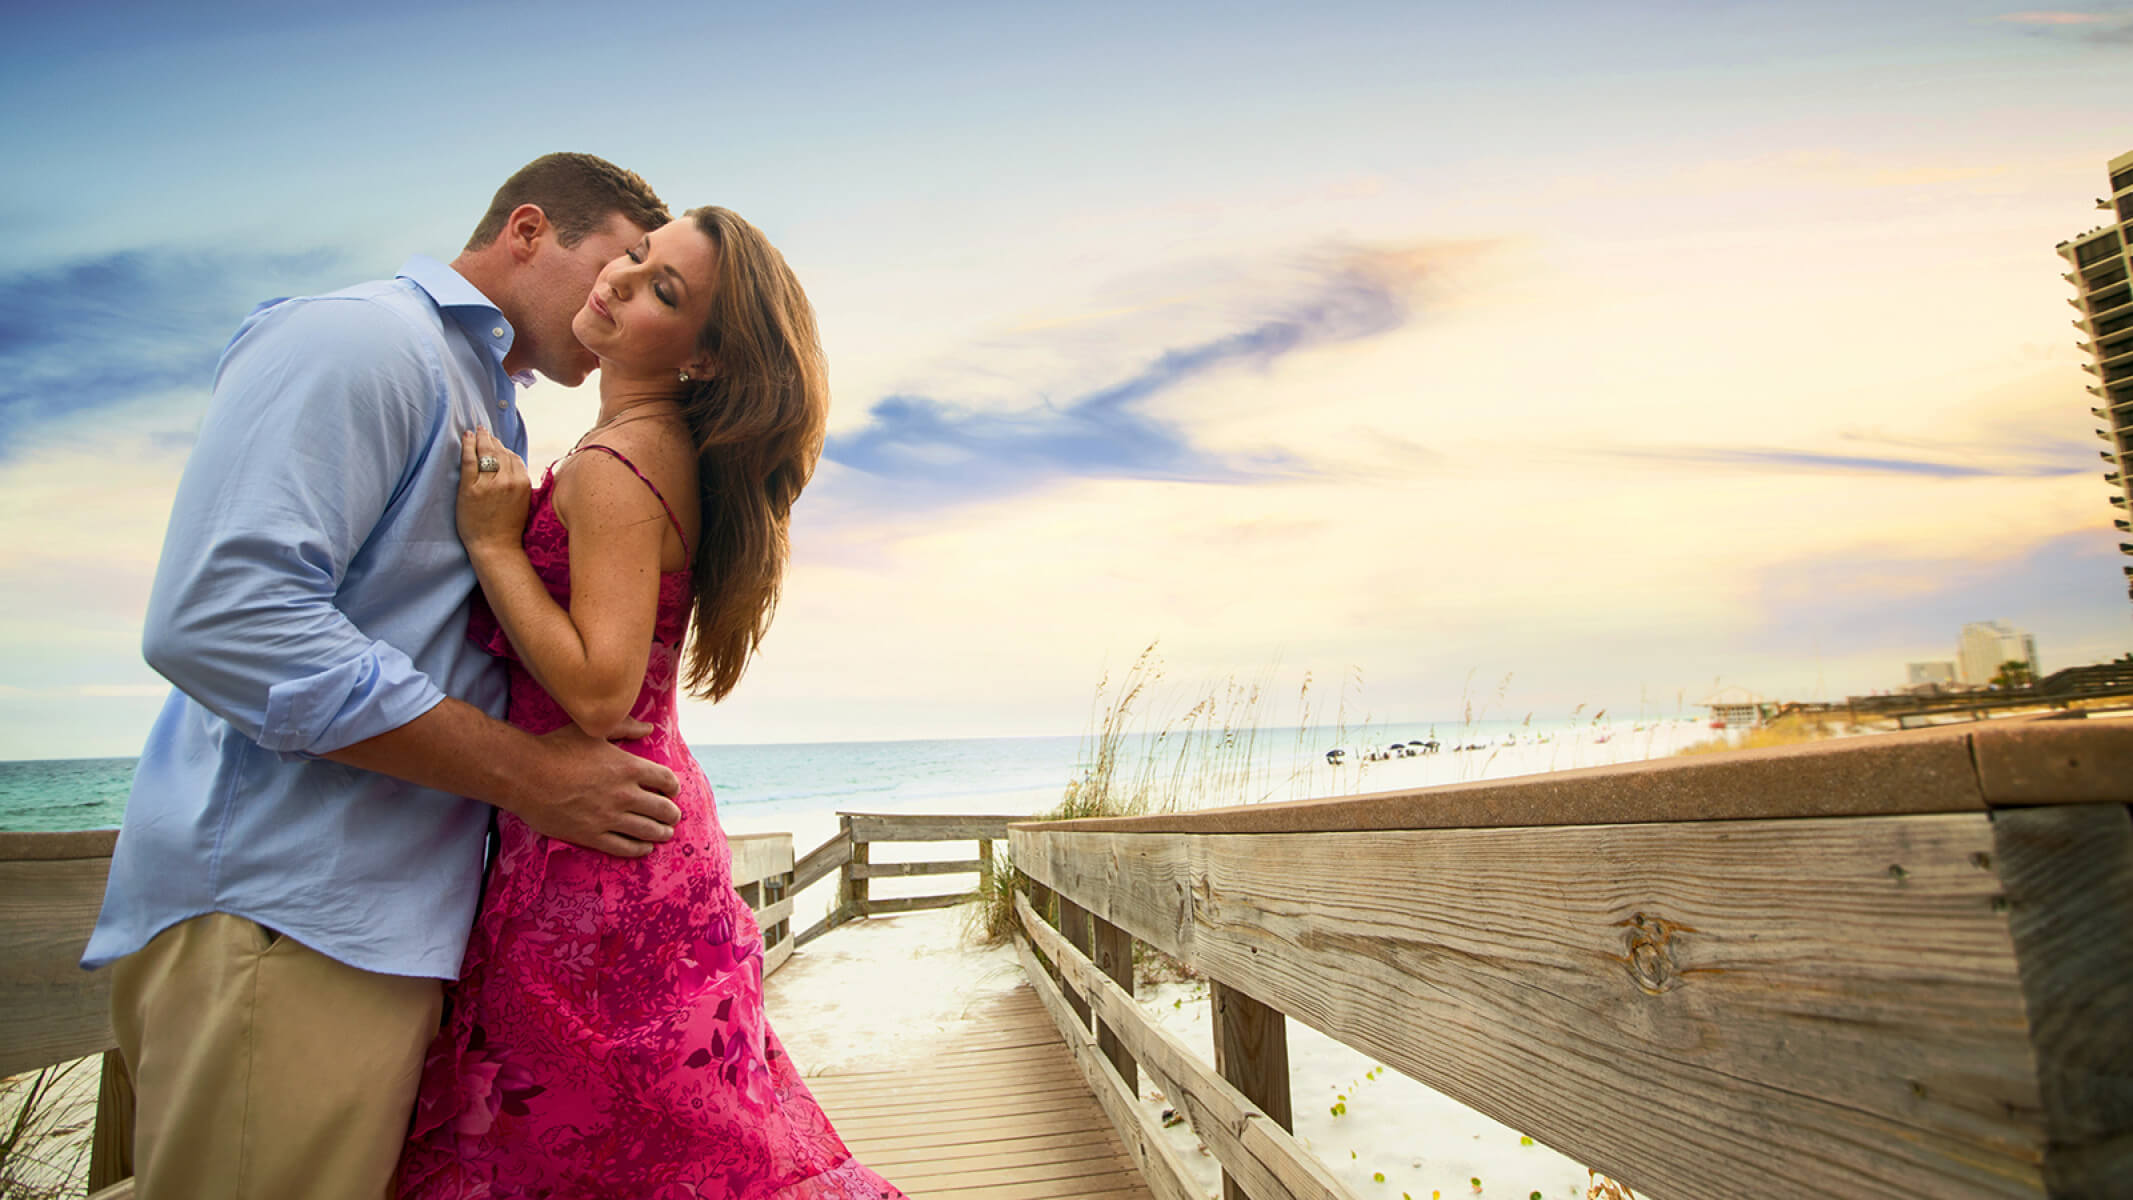 Florida Vacation Packages | Couples Getaway